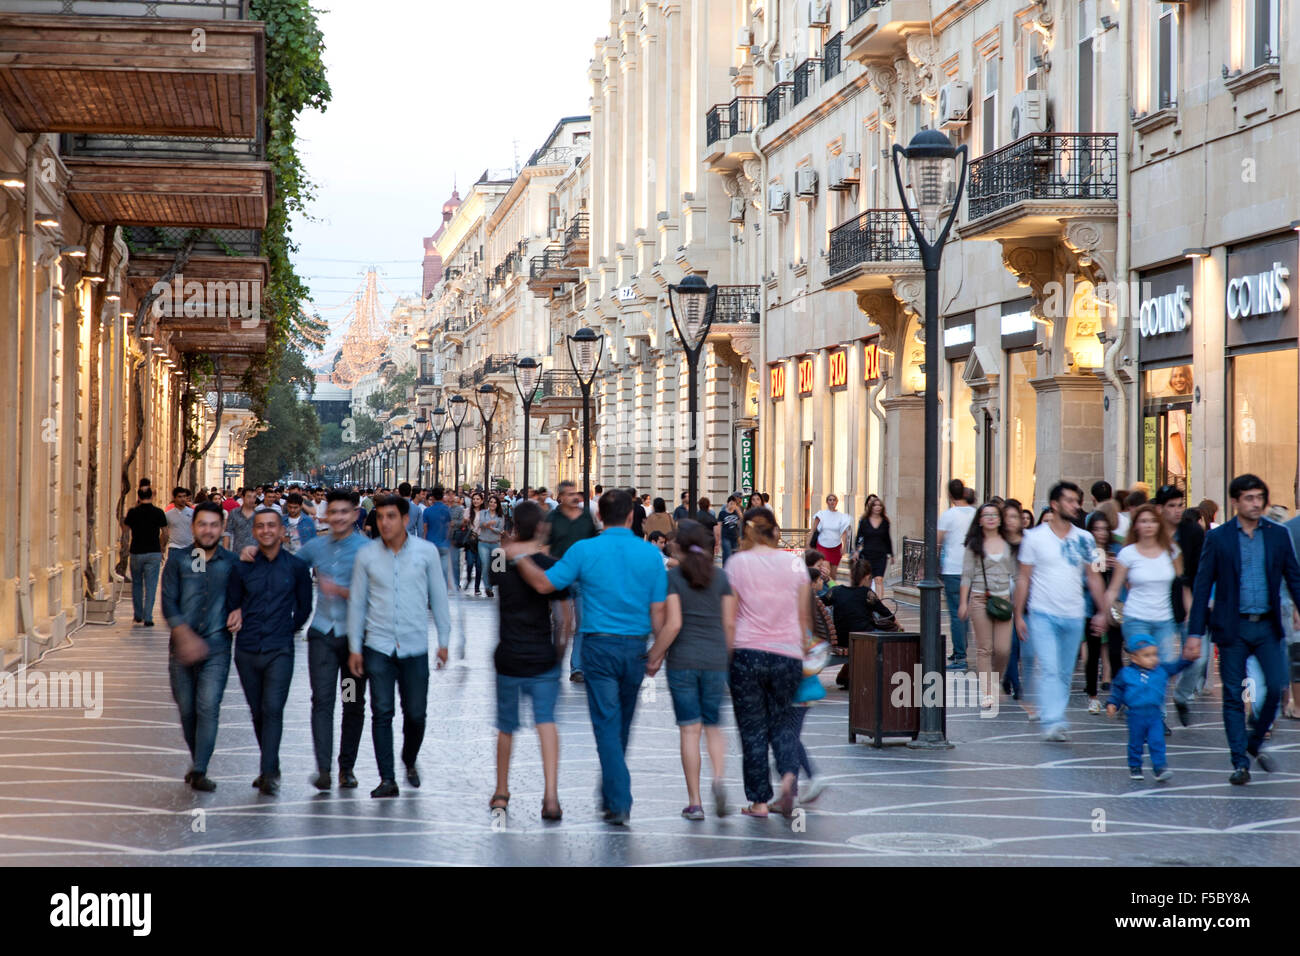 Pedestrians on Nizami street in central Baku. The street is named after classical poet Nizami Ganjavi. - Stock Image